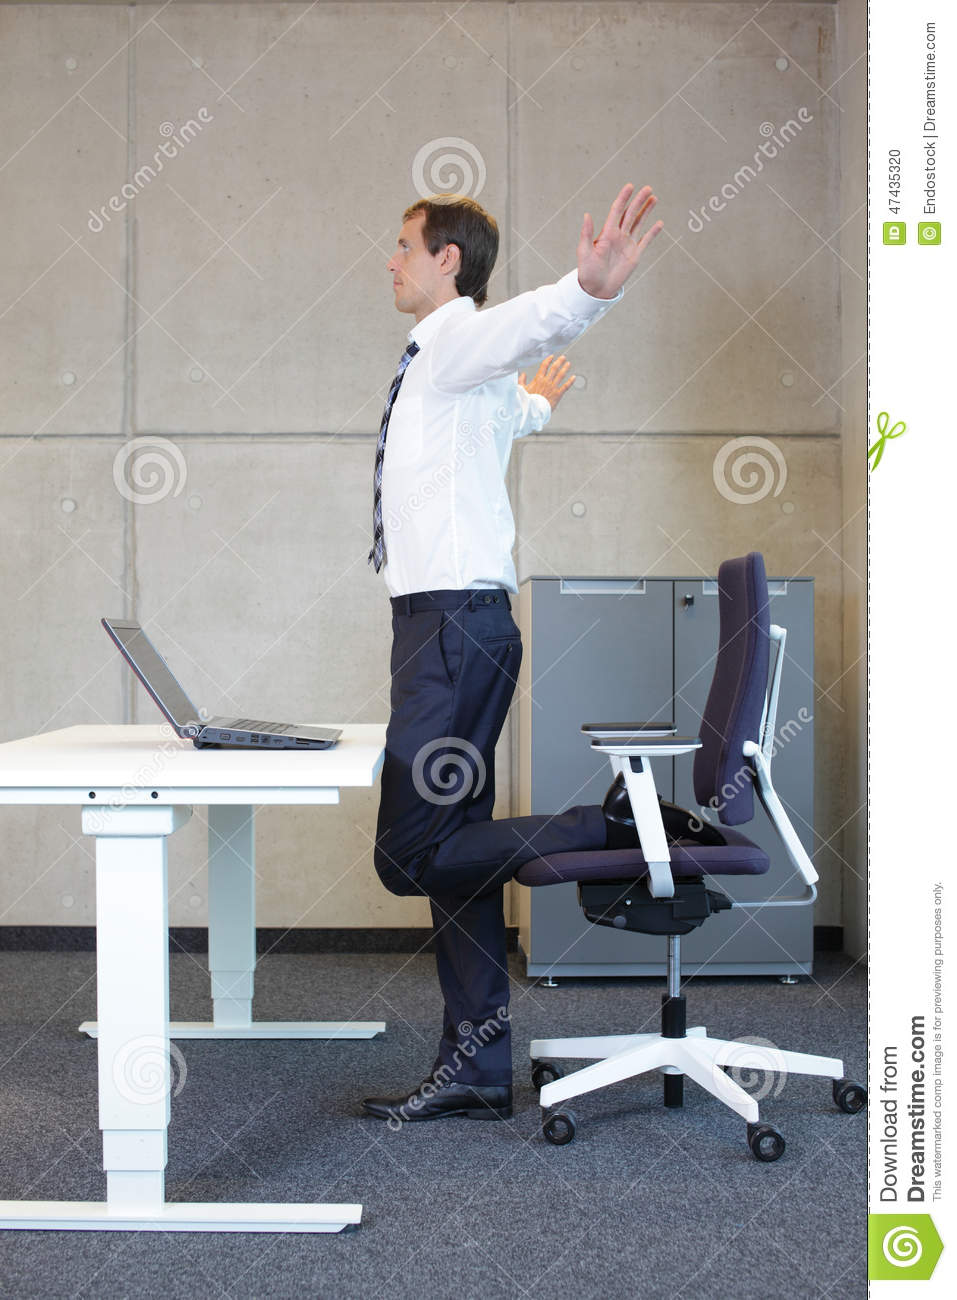 Business Man Exercises In Office Stock Photo  Image 47435320